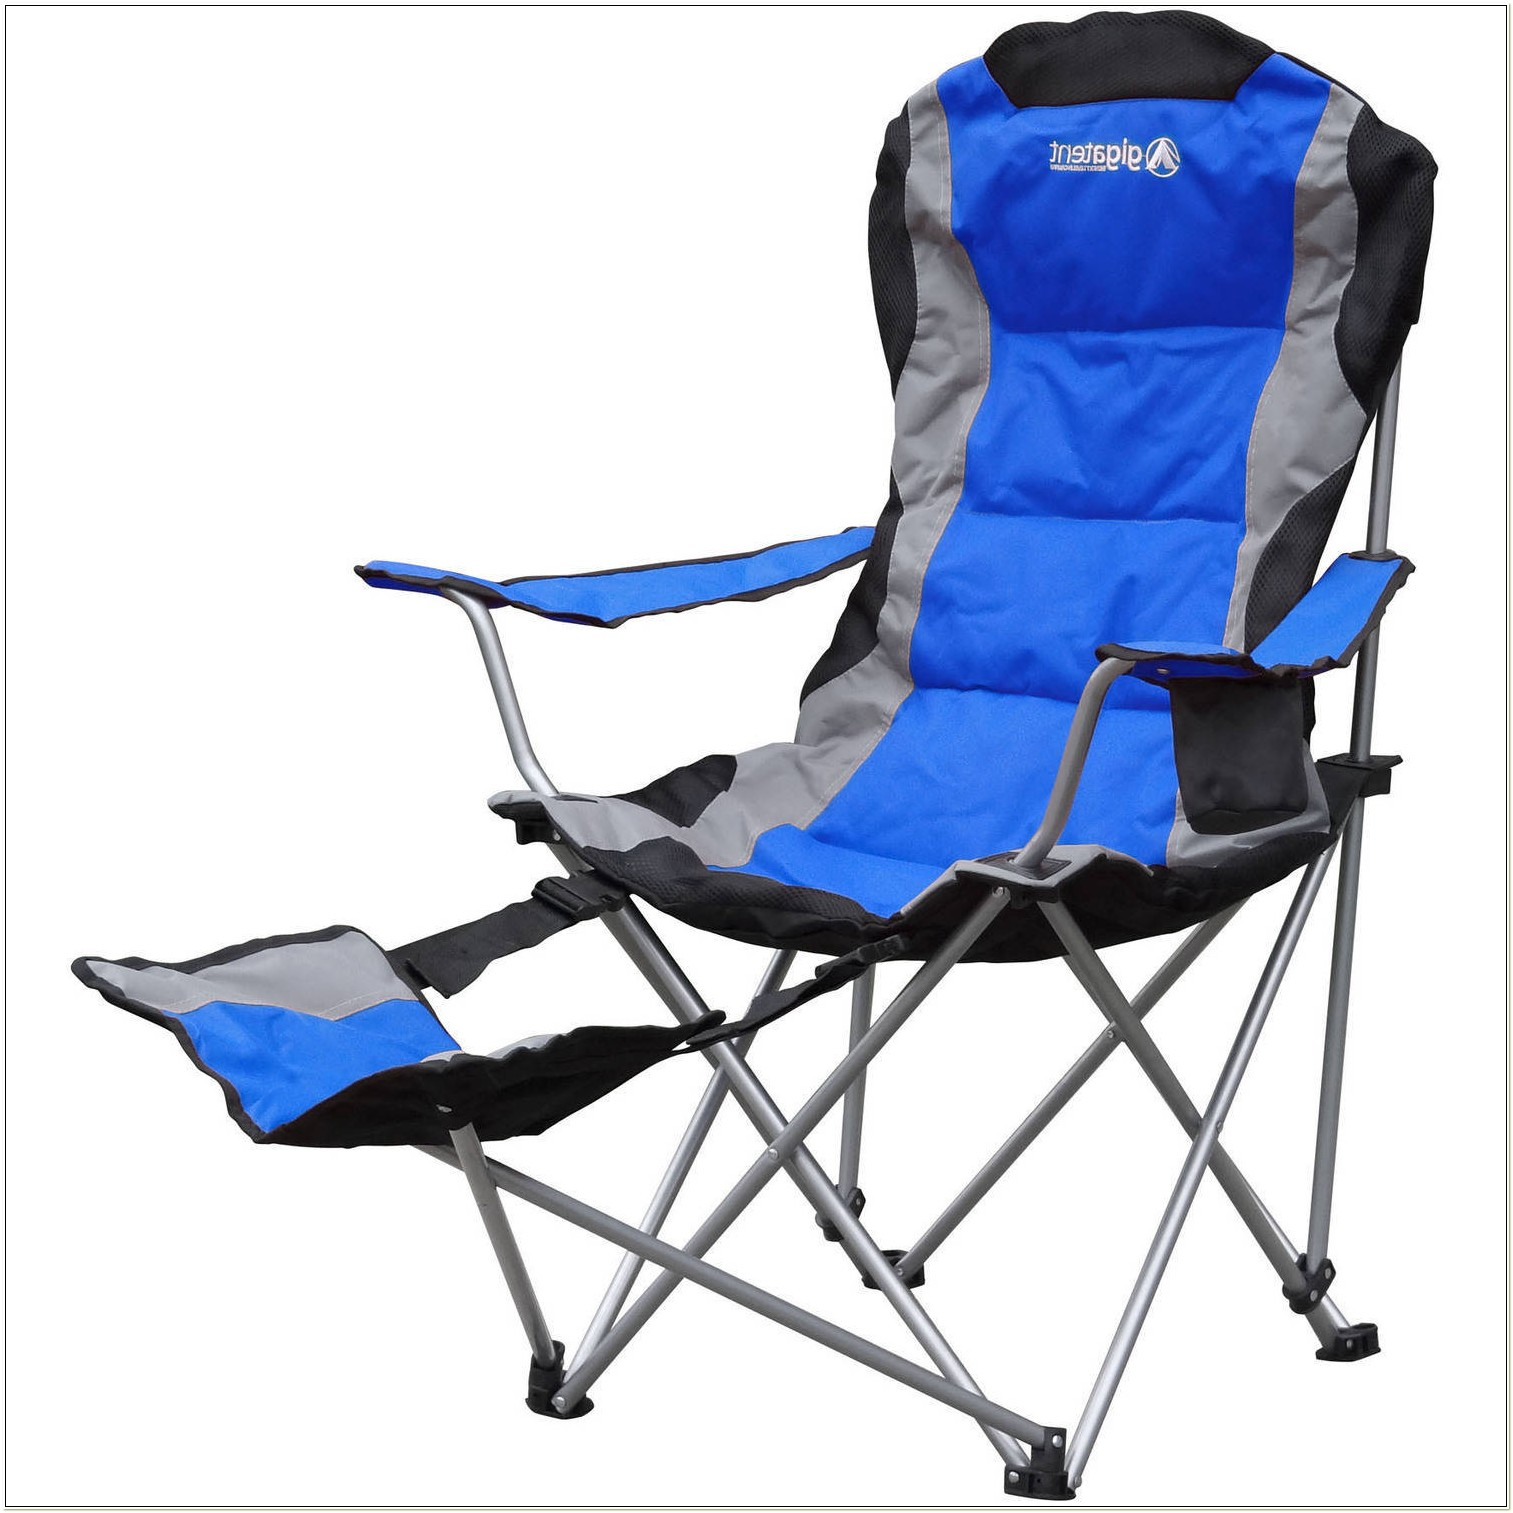 Heavy Duty Camping Chairs Walmart